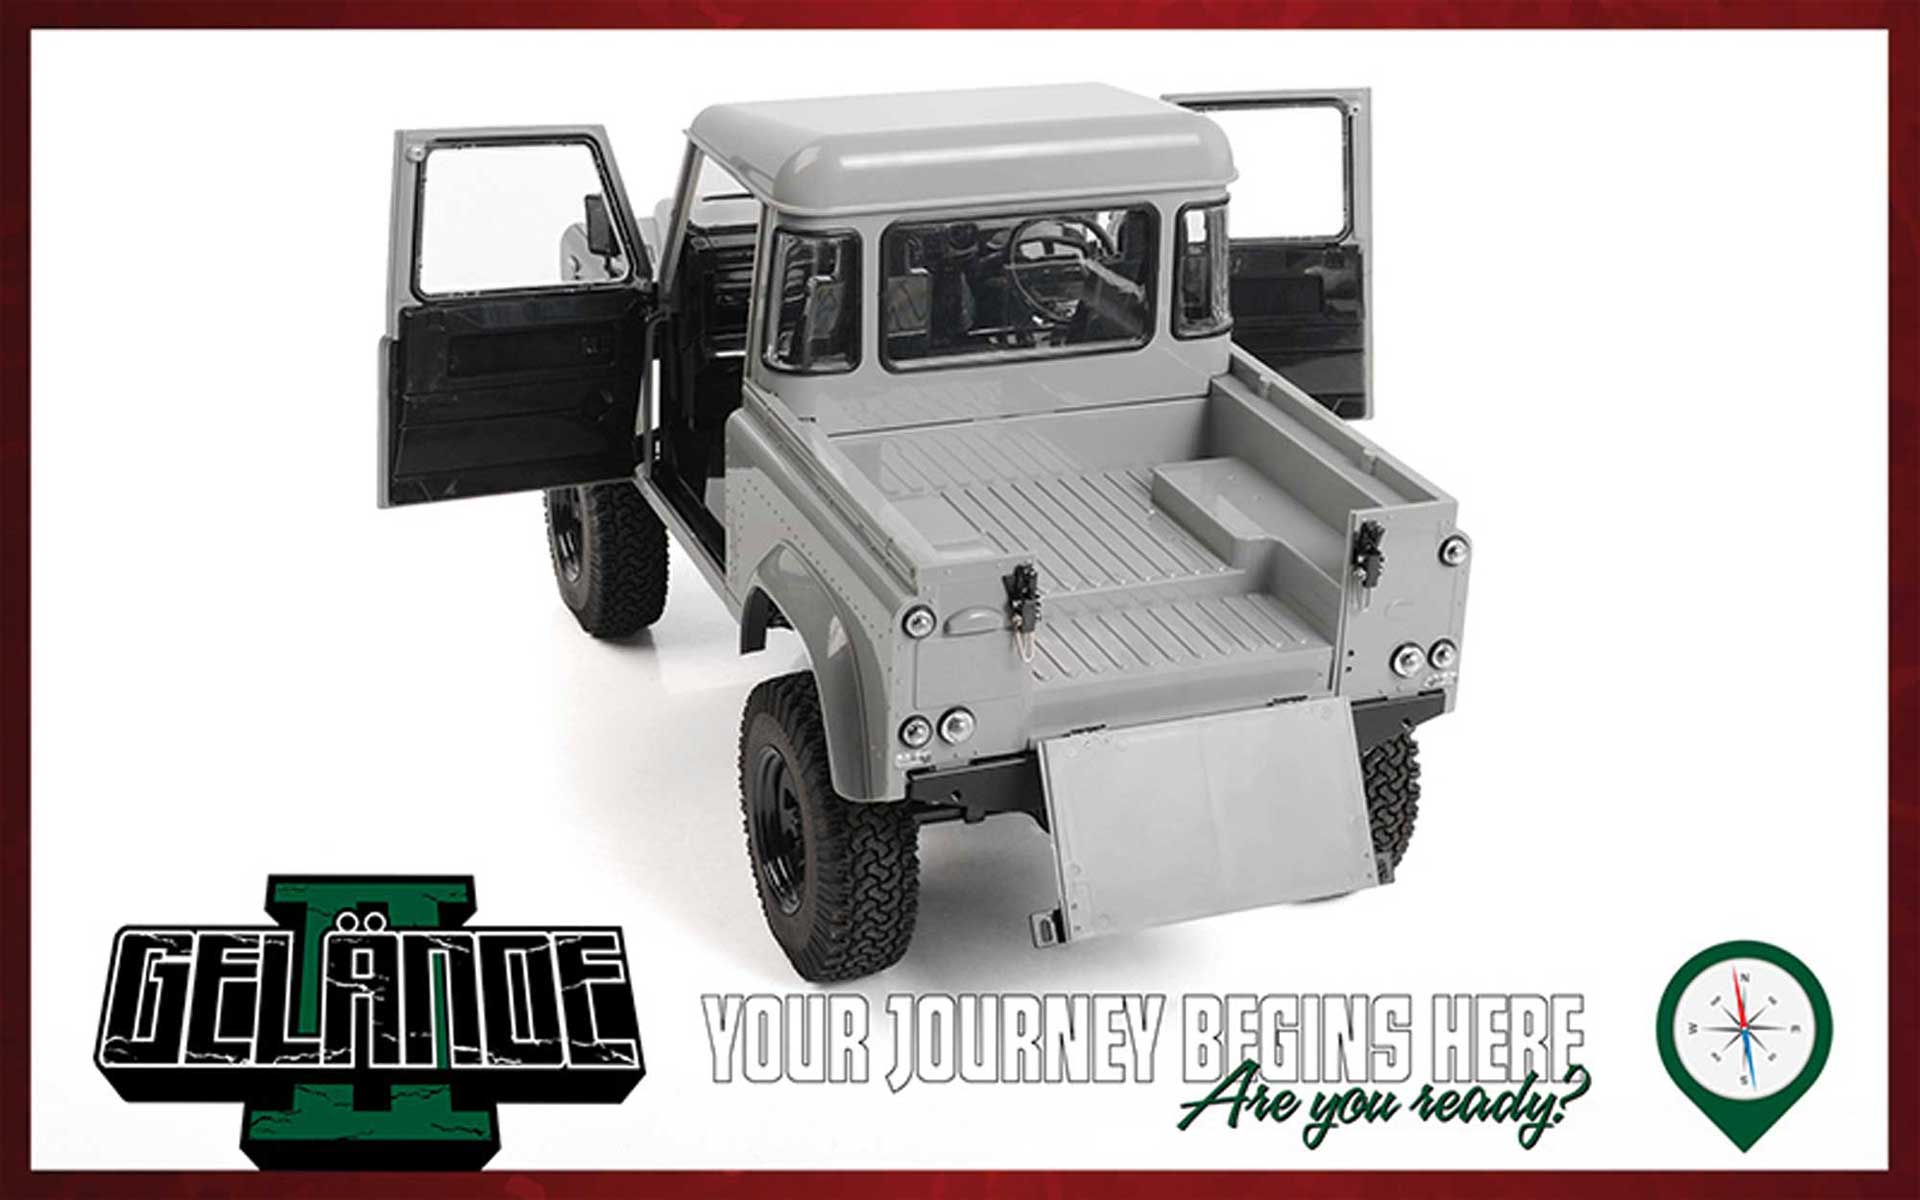 RC4WD Gelande II Truck Kit incl. 2015 Land Rover Defender Chassis